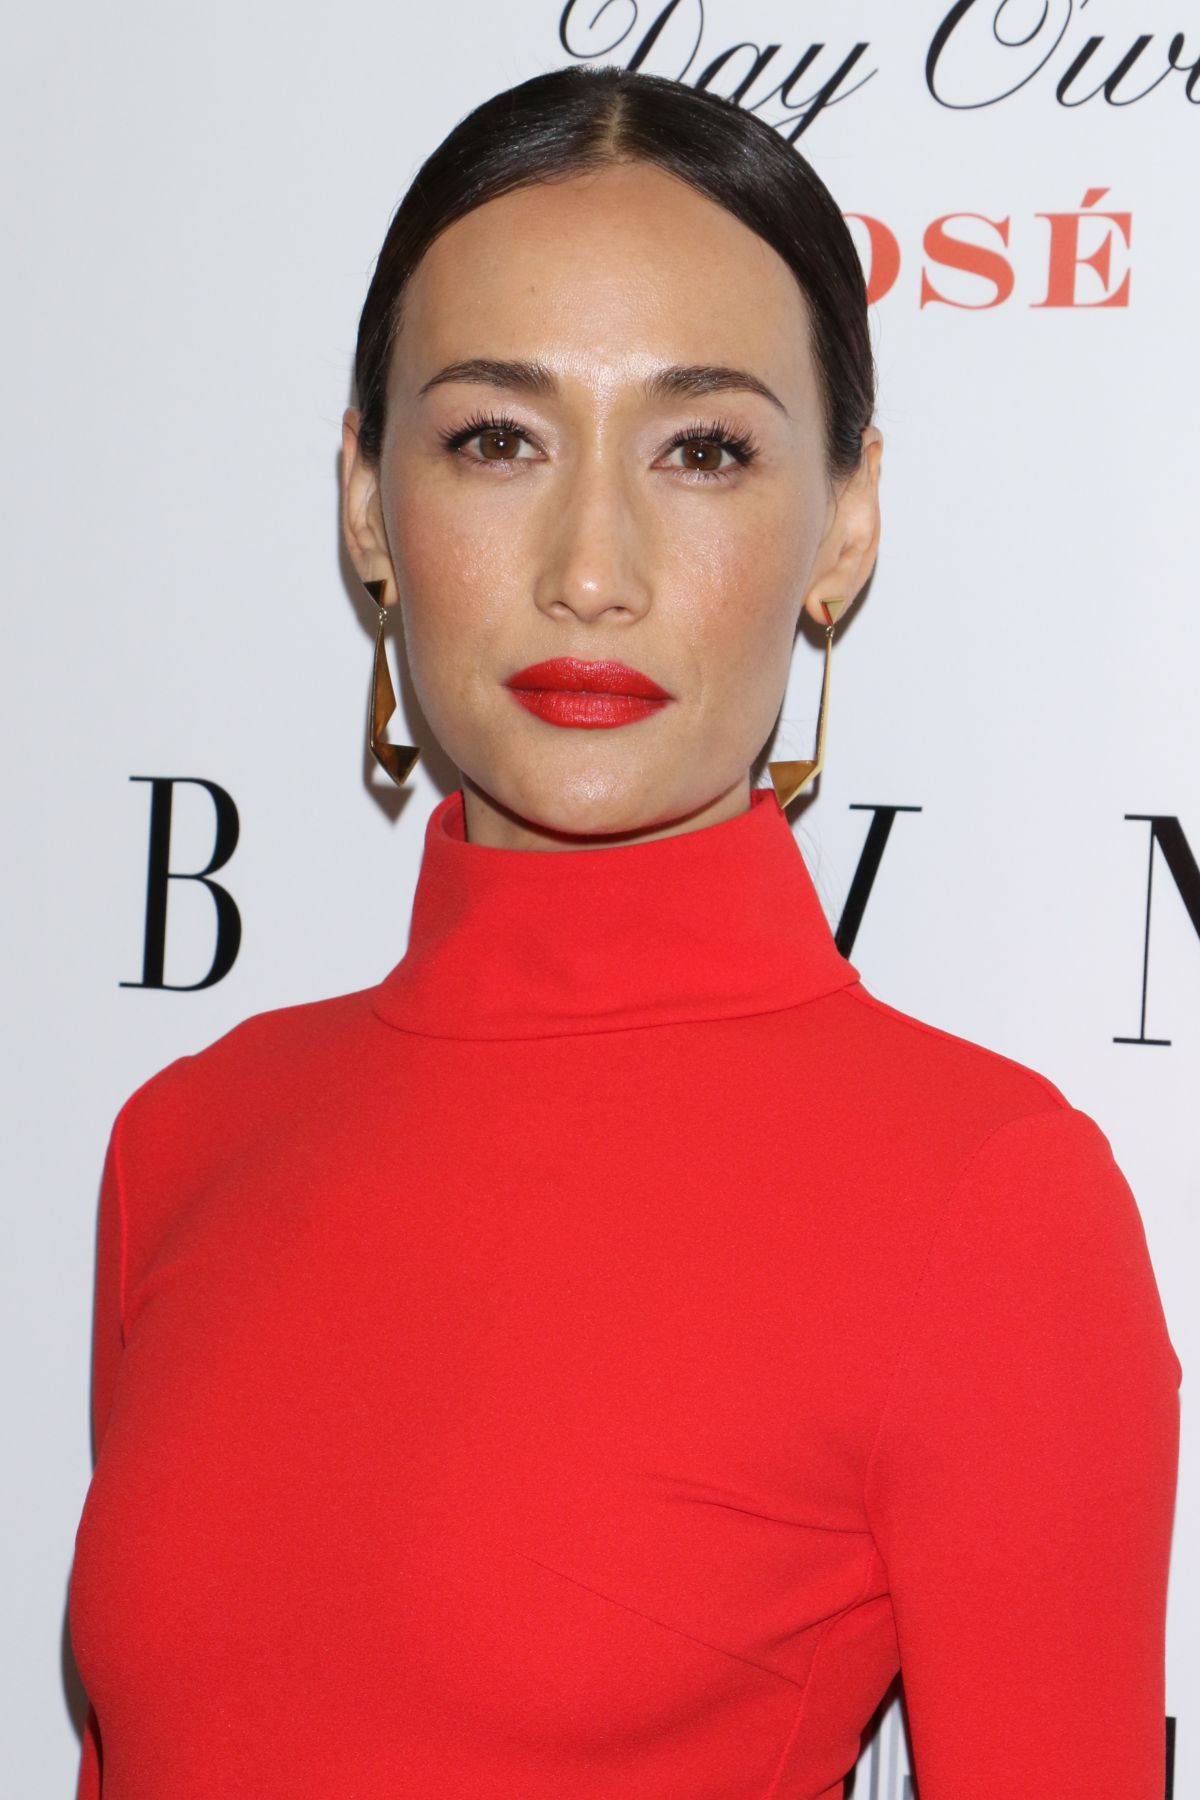 MAGGIE Q at Spiderman: Homecoming Premiere in New York 06/26/2017